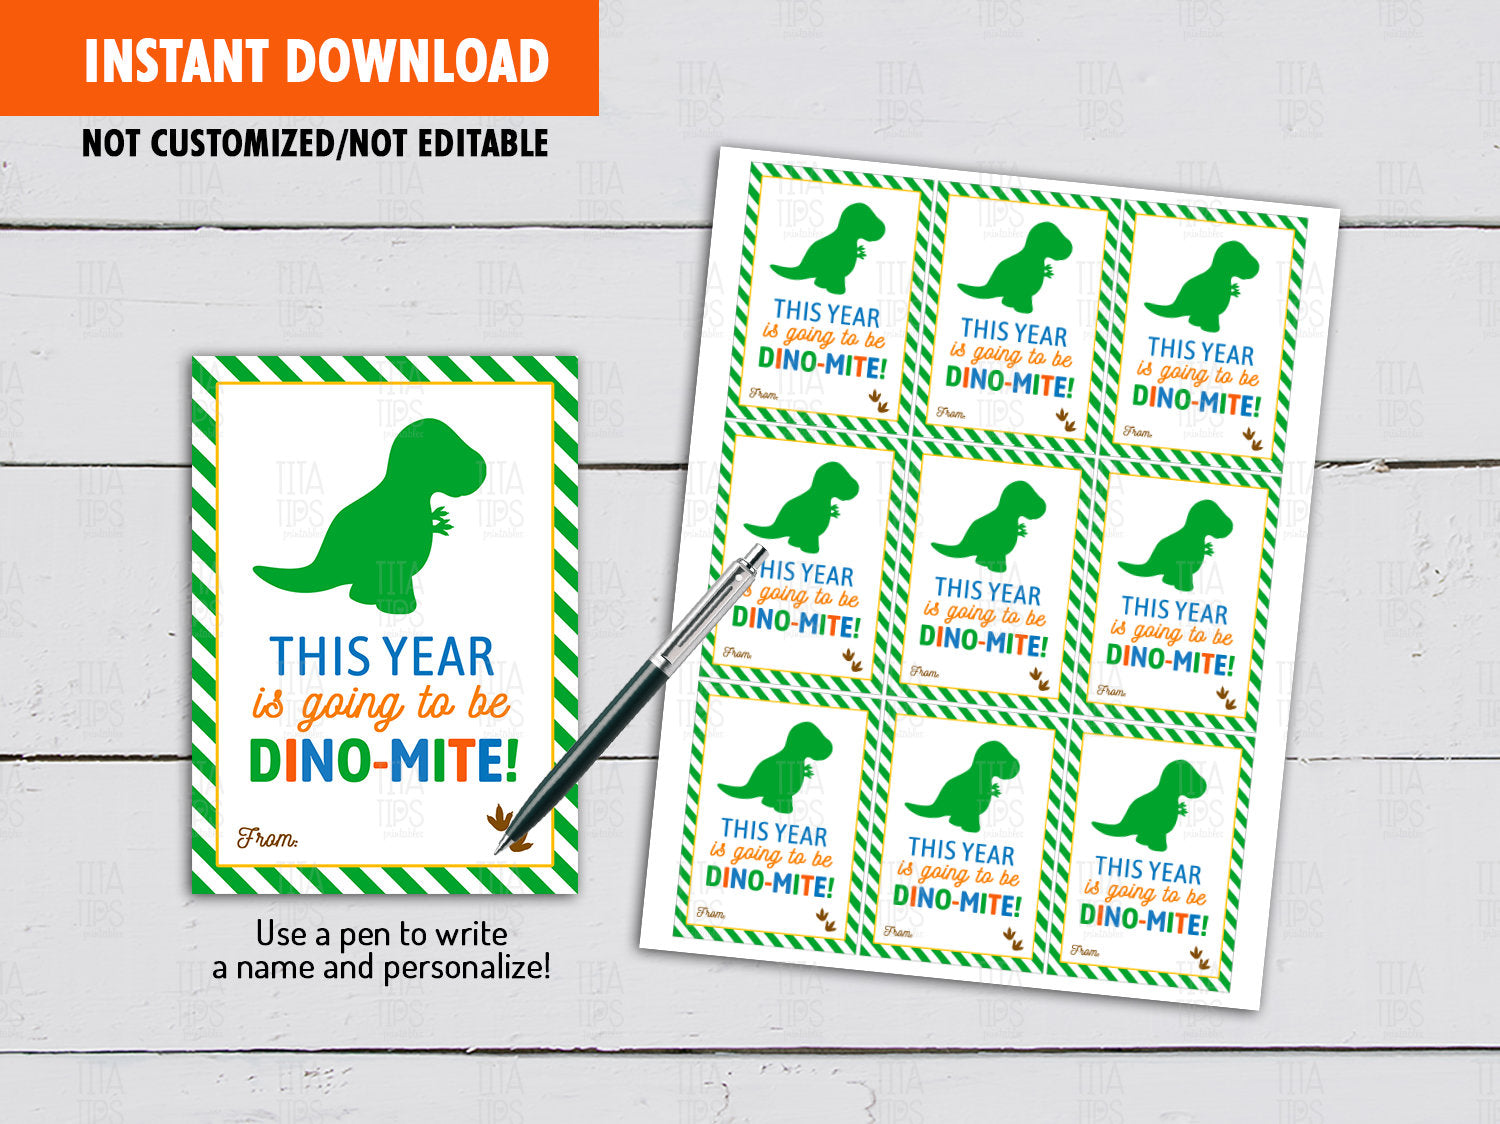 This year is going to be DINOMITE, Back to School Gifts Ideas, Instant Download - TitaTipsPrintables